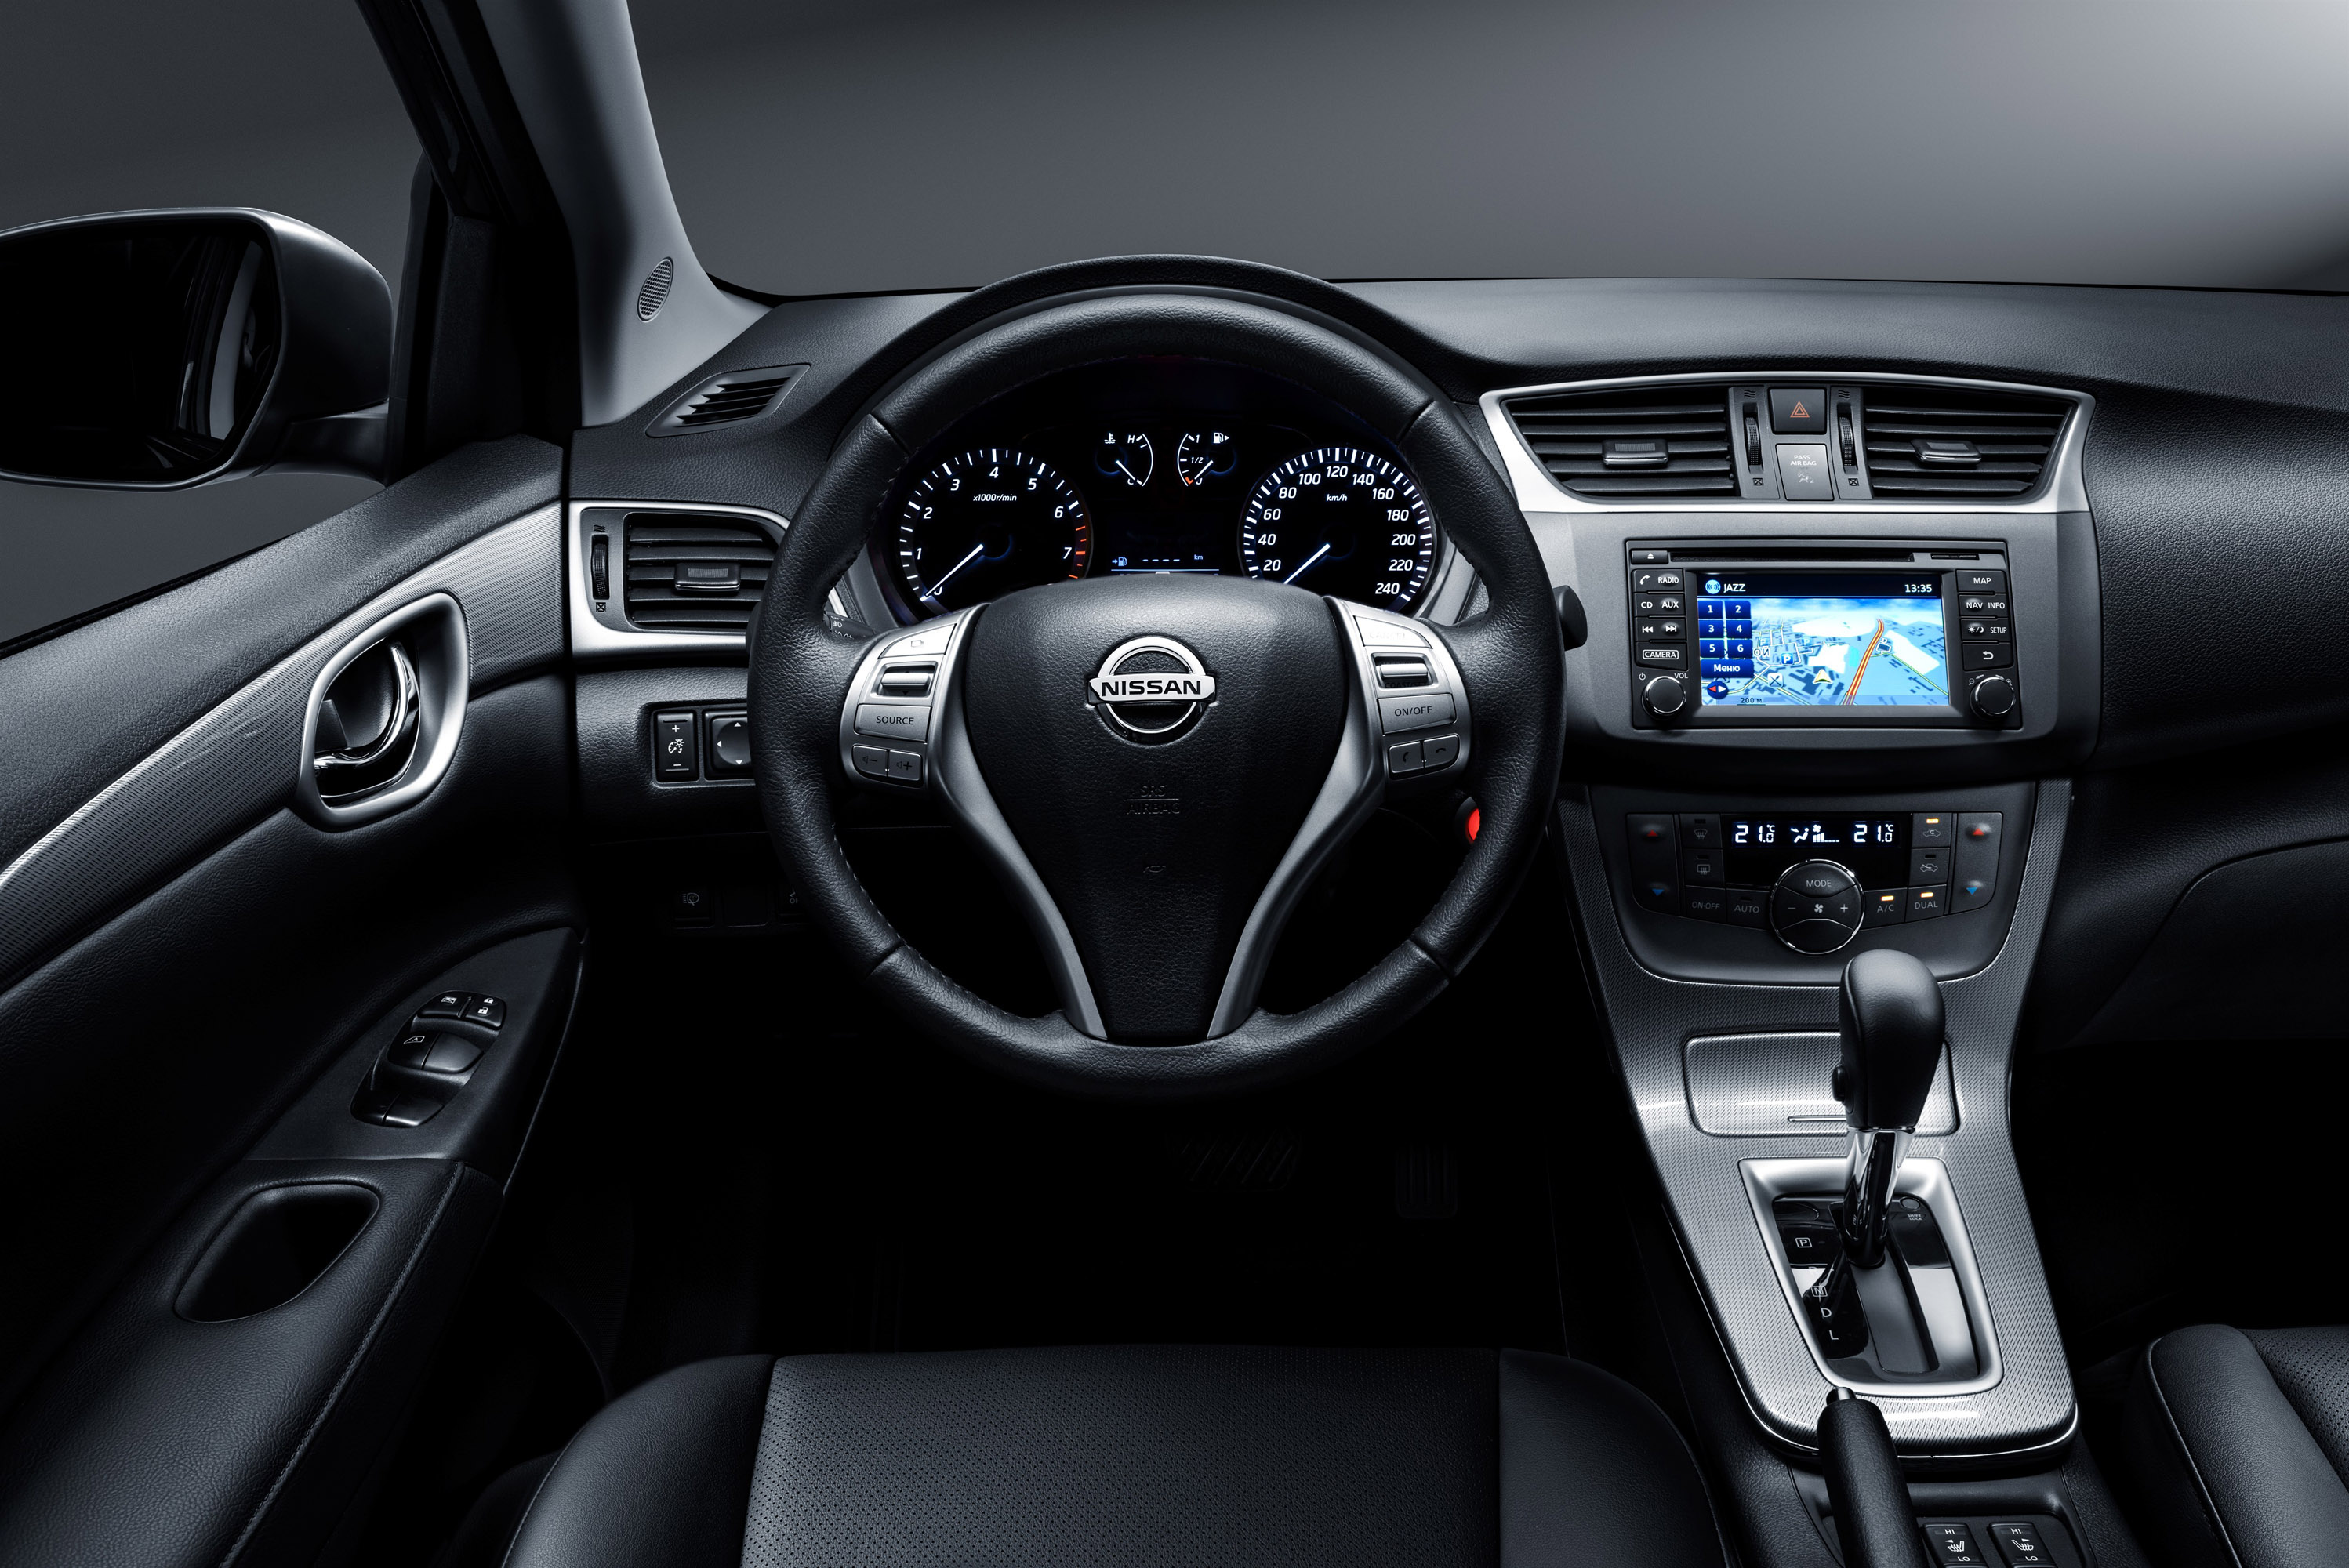 Black Car Wallpapers For Mobile 2015 Nissan Sentra Picture 108936